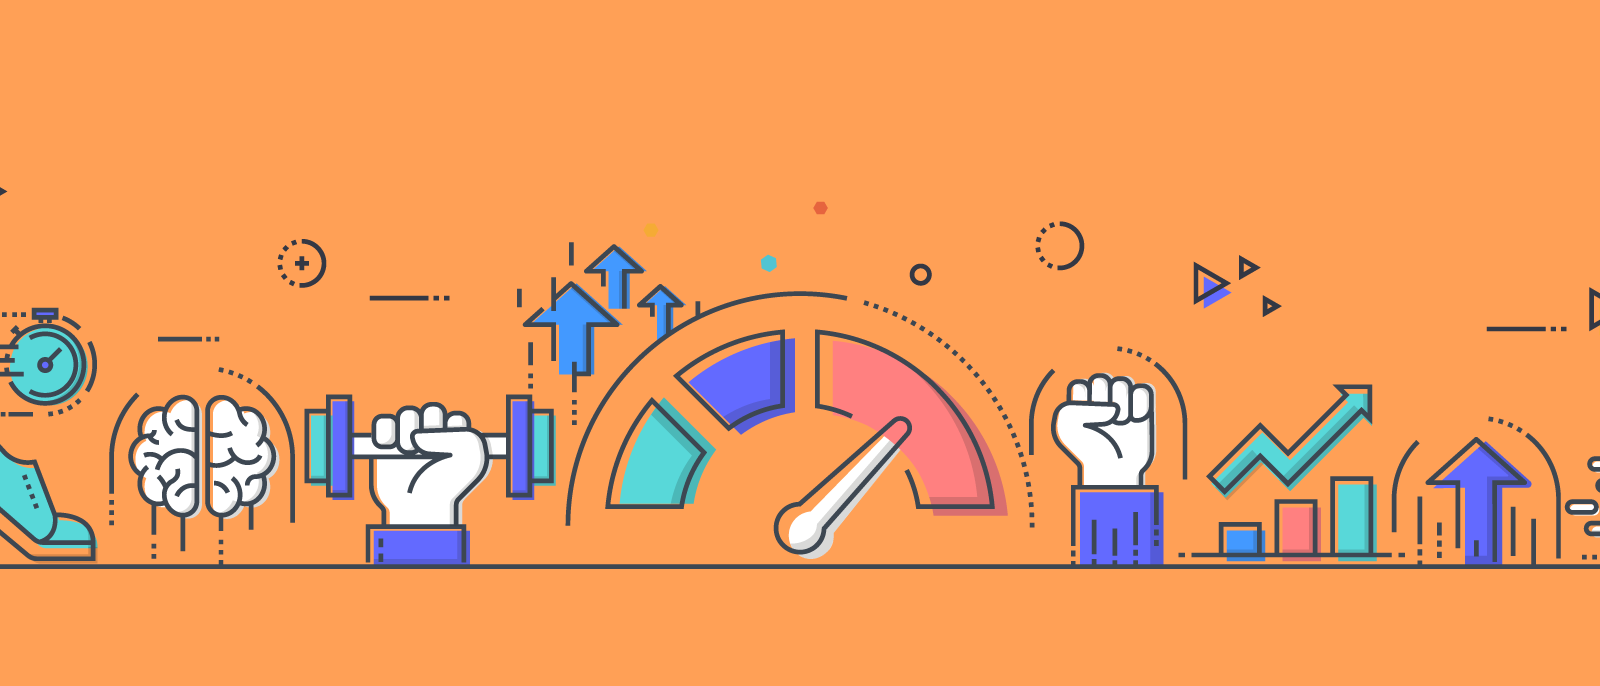 how to apply performance metrics to business processes